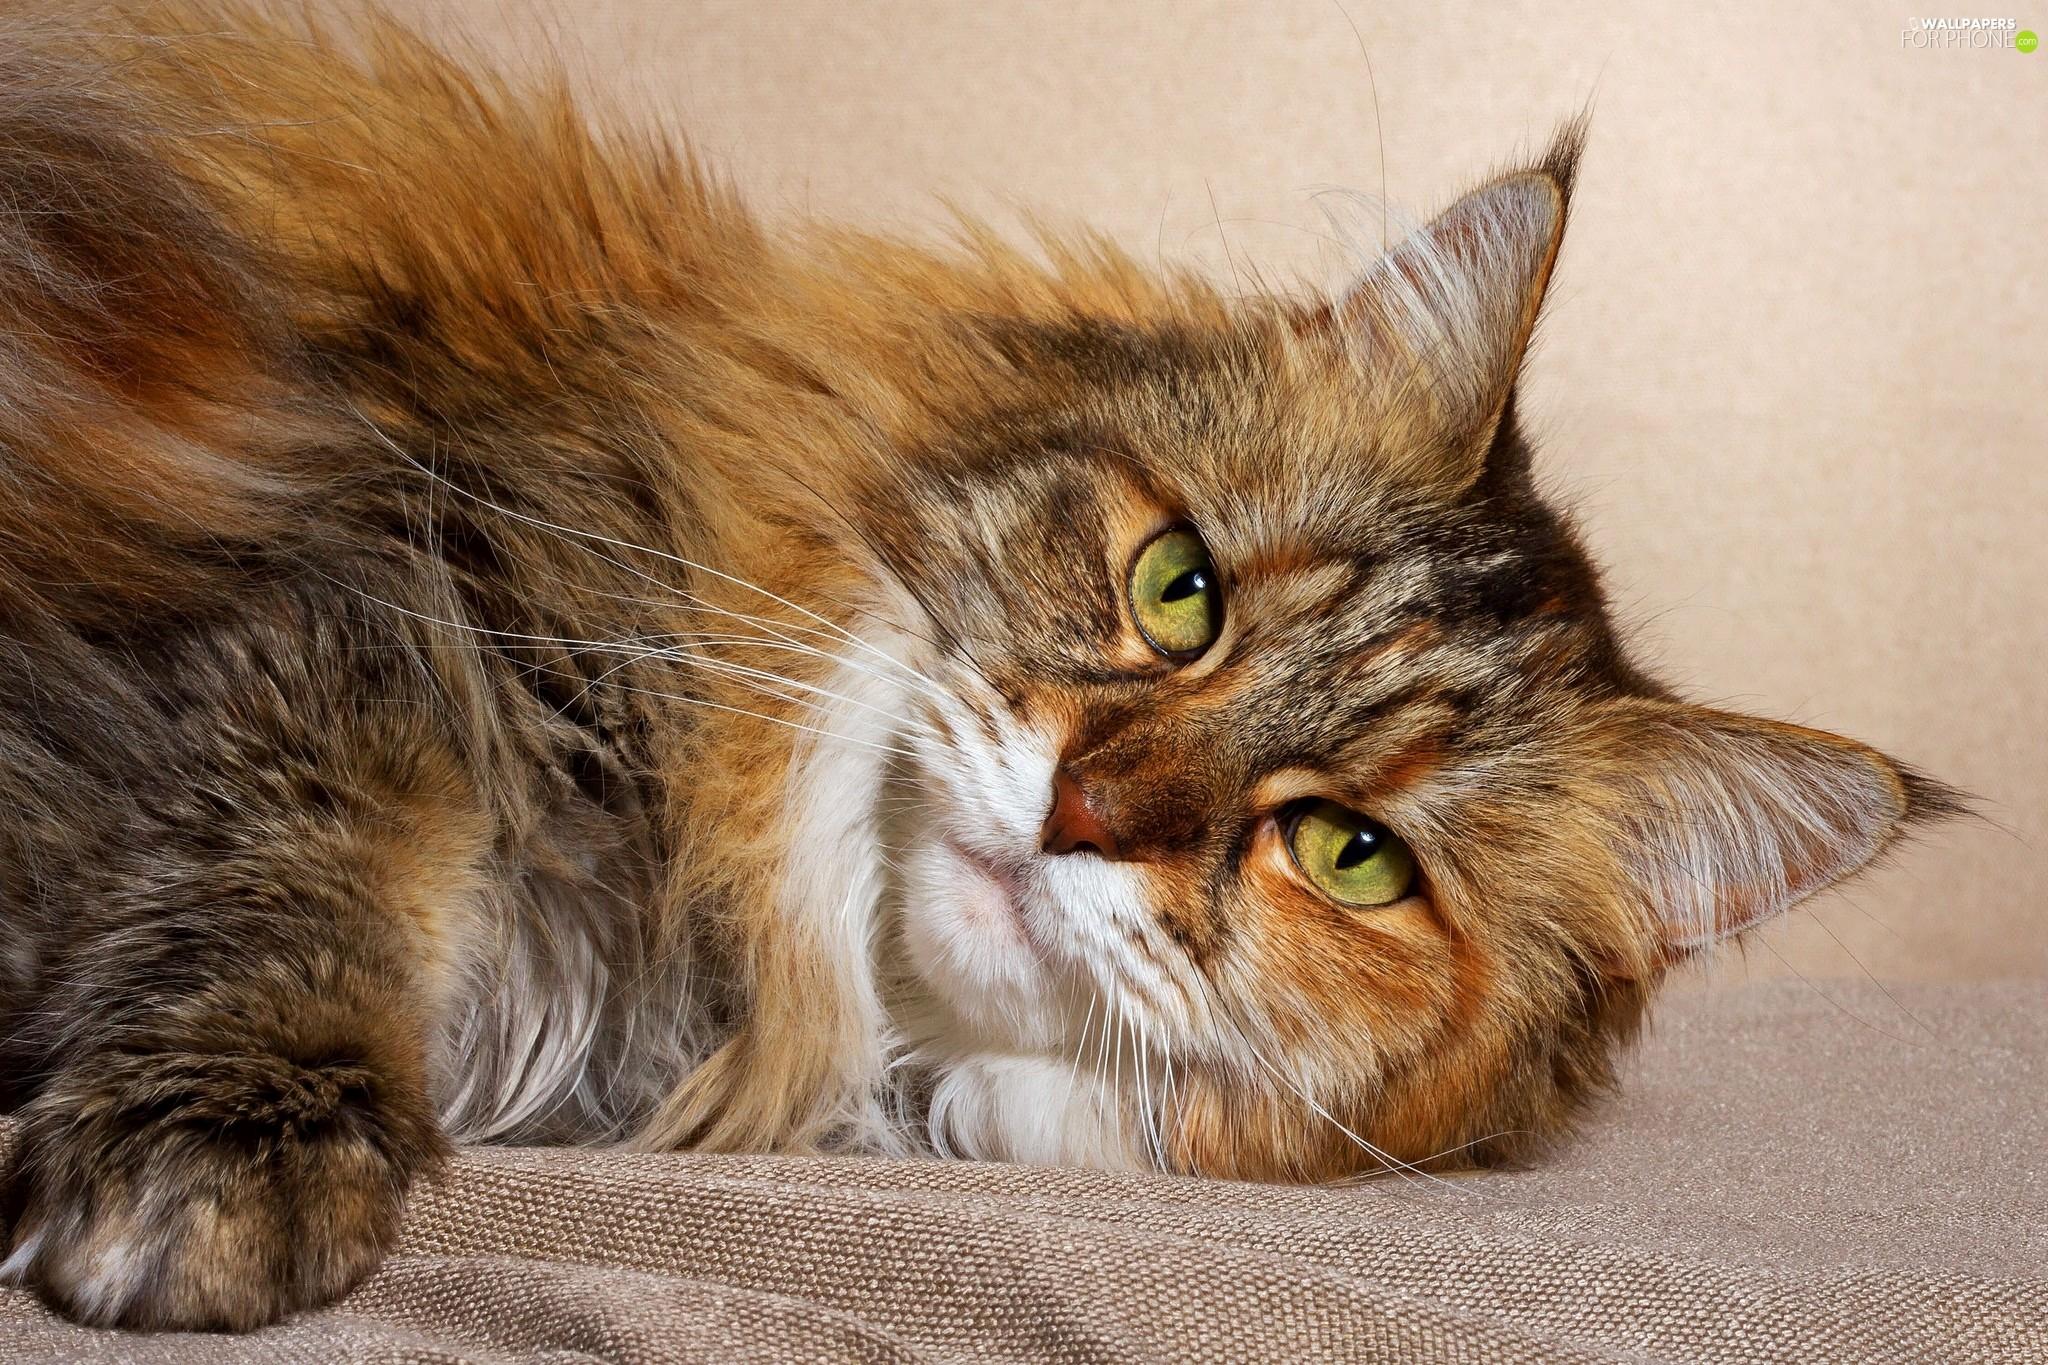 Res: 2048x1365, cat, lying, Maine Coon